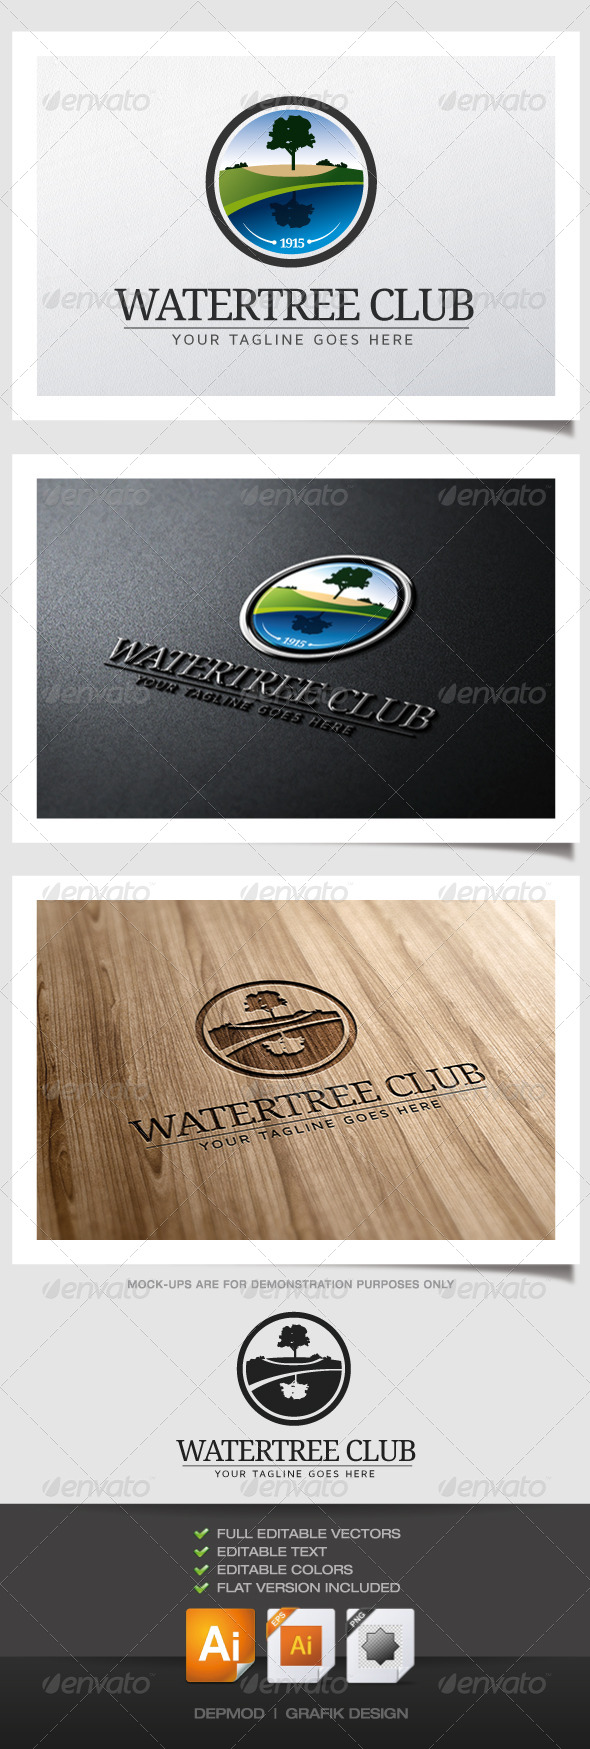 Watertree Club Logo - Nature Logo Templates